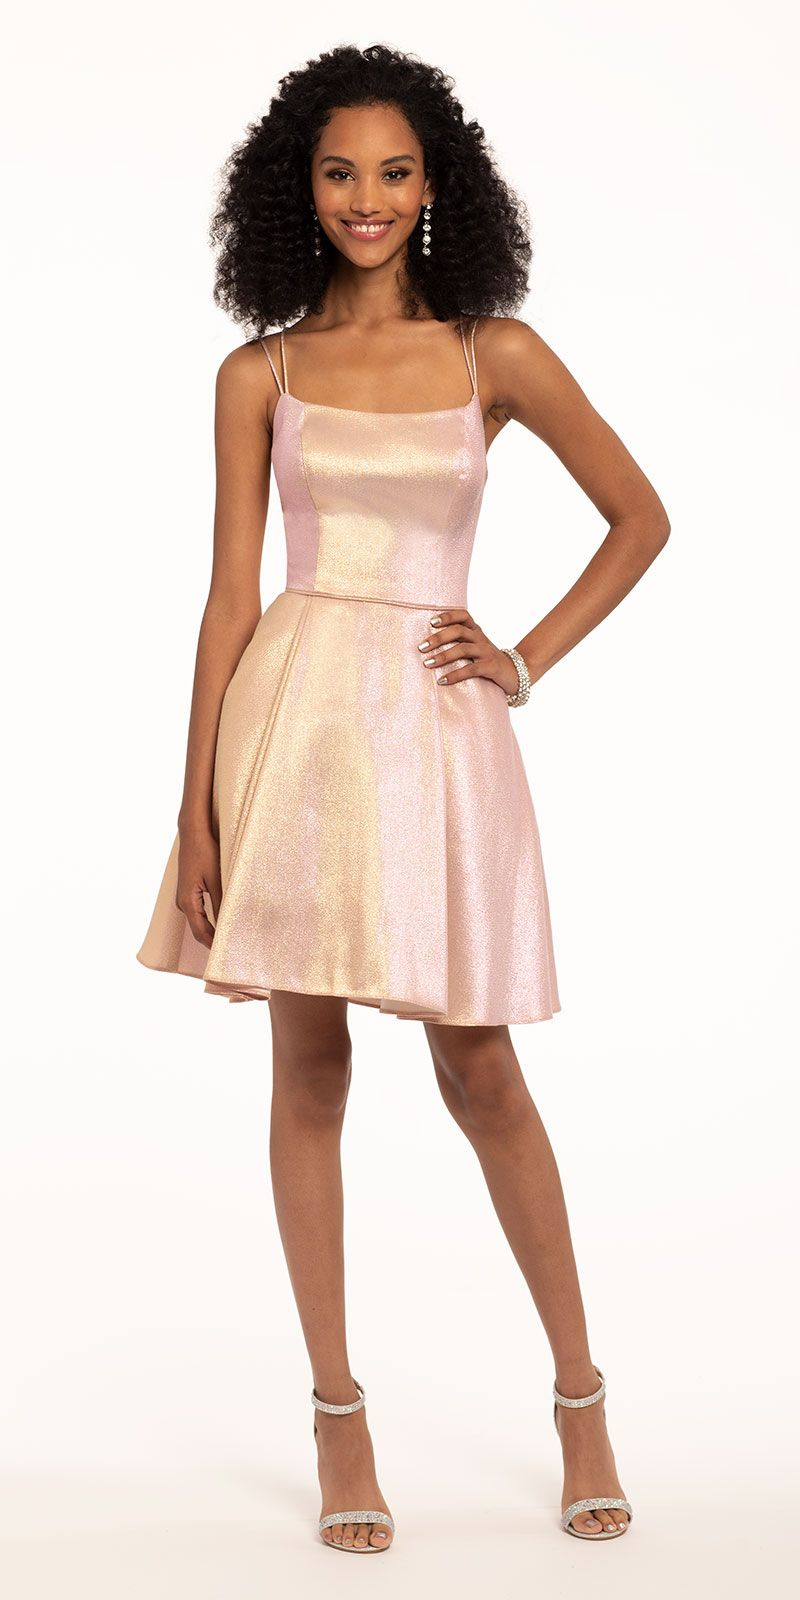 Metallic Fit And Flare Party Dress Summer Cocktail Dress Short Cocktail Dress Dresses [ 1600 x 800 Pixel ]